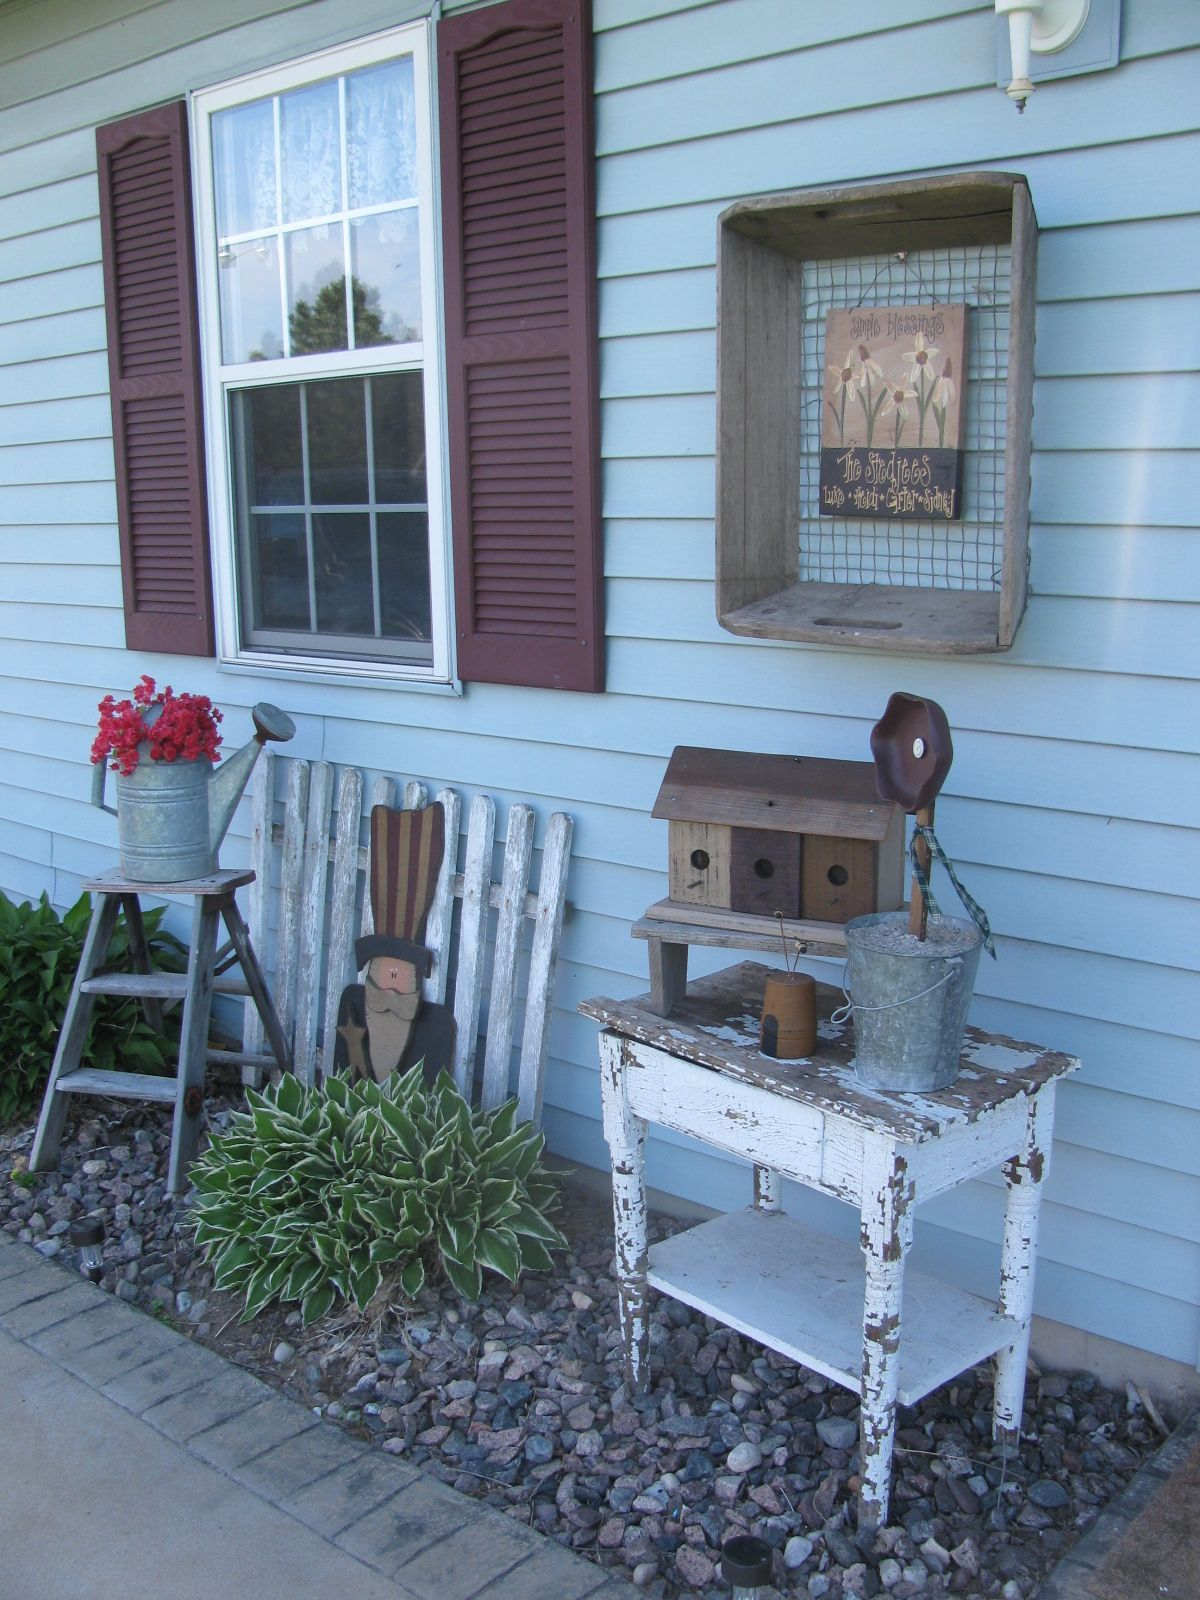 Primitive country gardens - Explore Primitive Outdoor Decorating And More